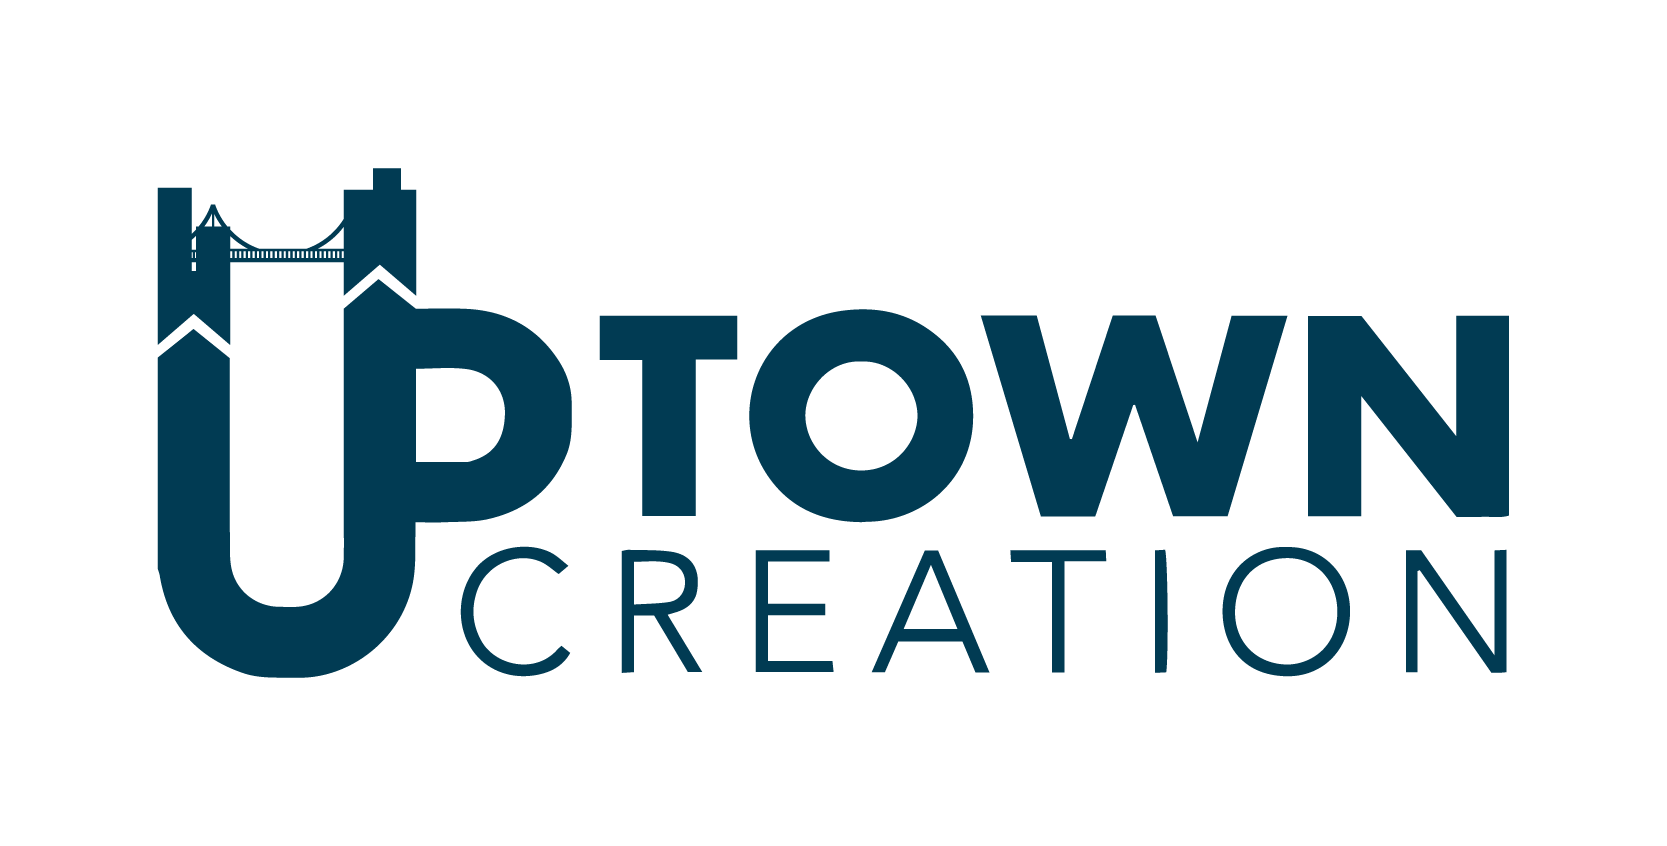 Uptown Creation Logo